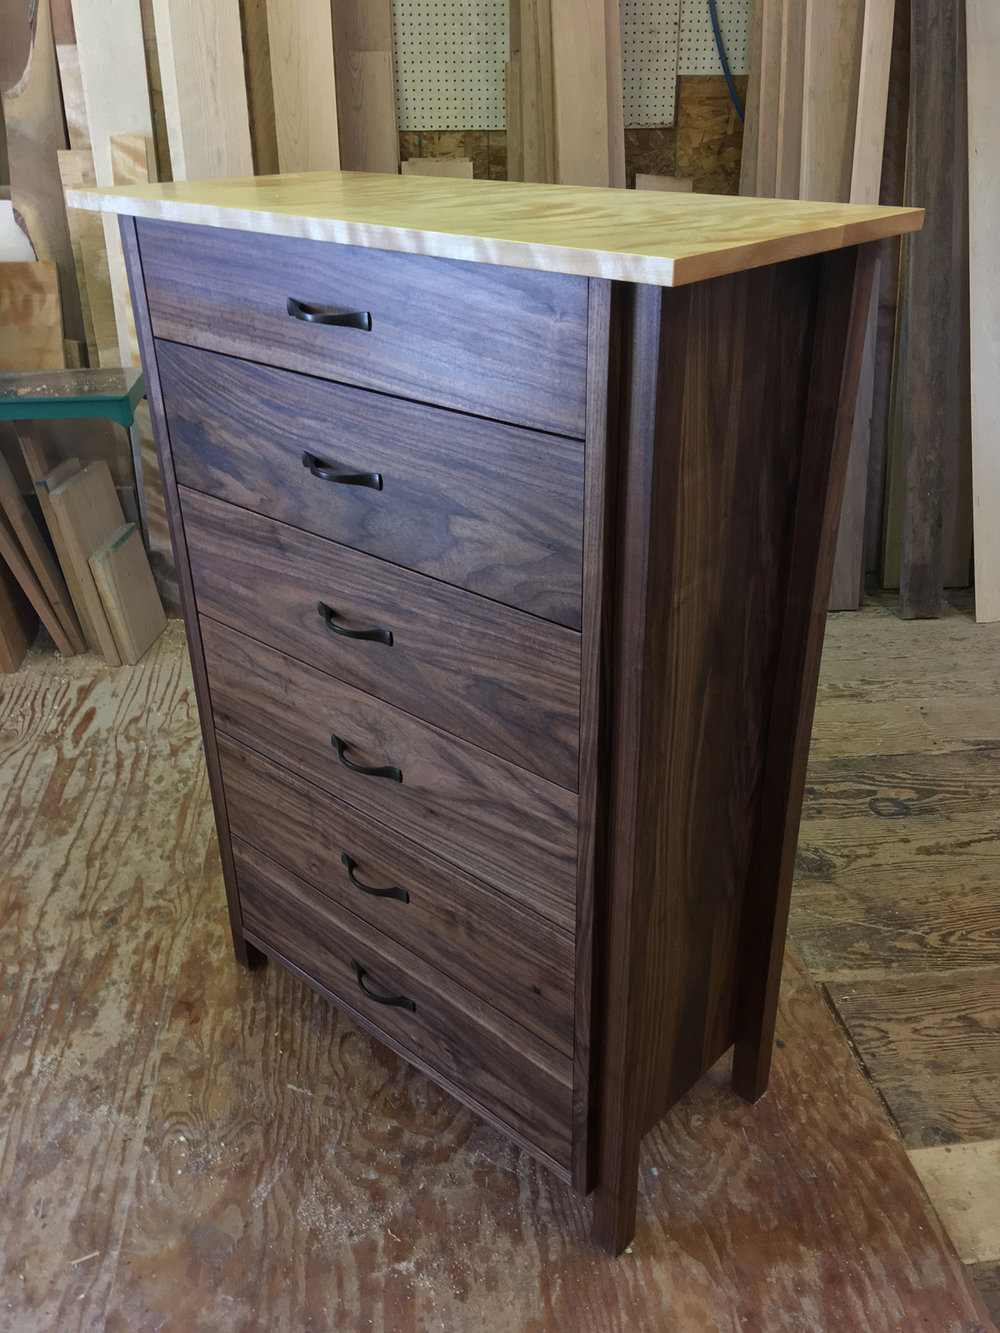 A flamed birch top on a 6 drawer walnut dresser.